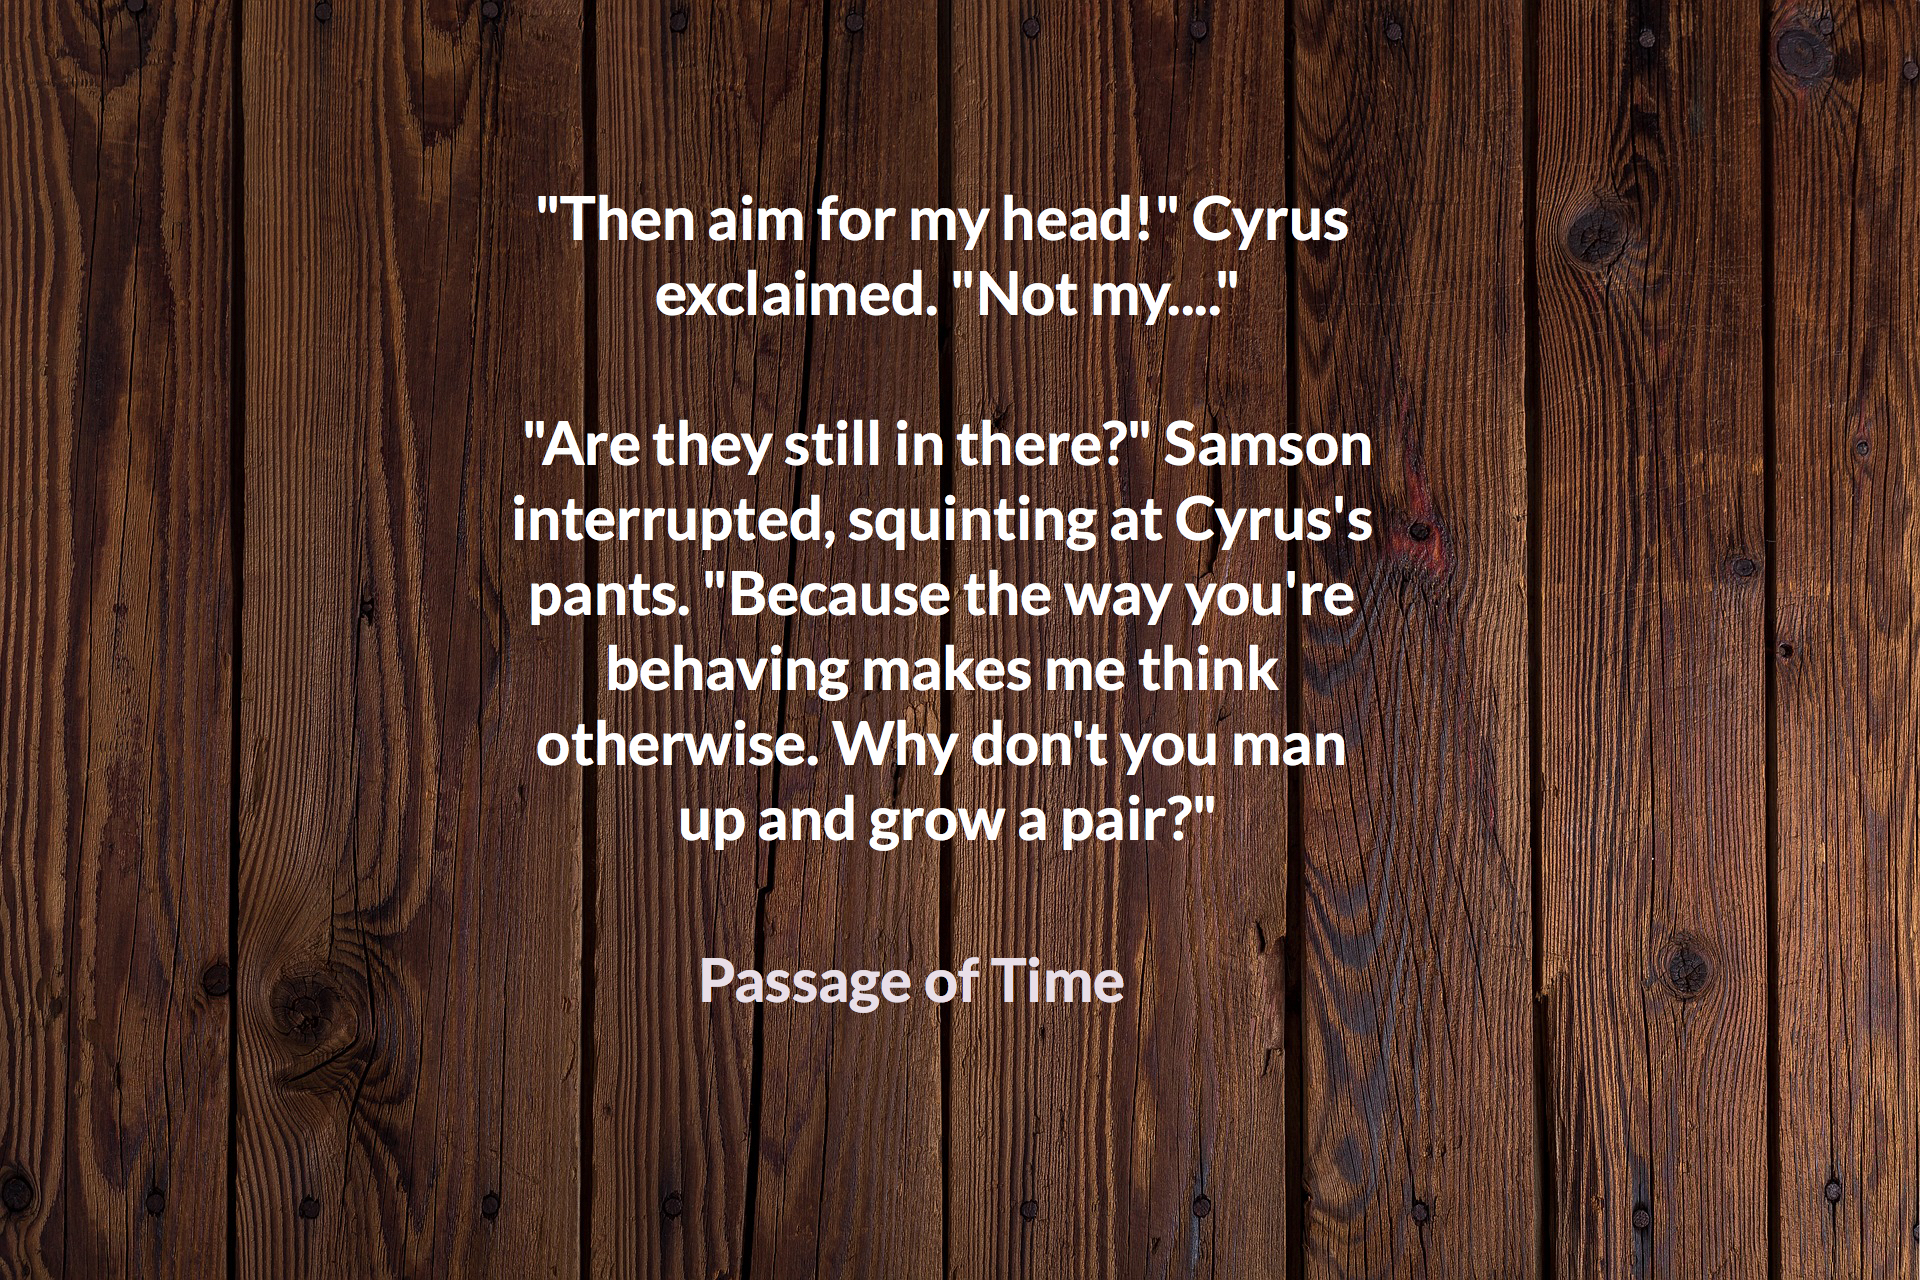 then aim for my head cyrus exclaimed not my are they still in there...